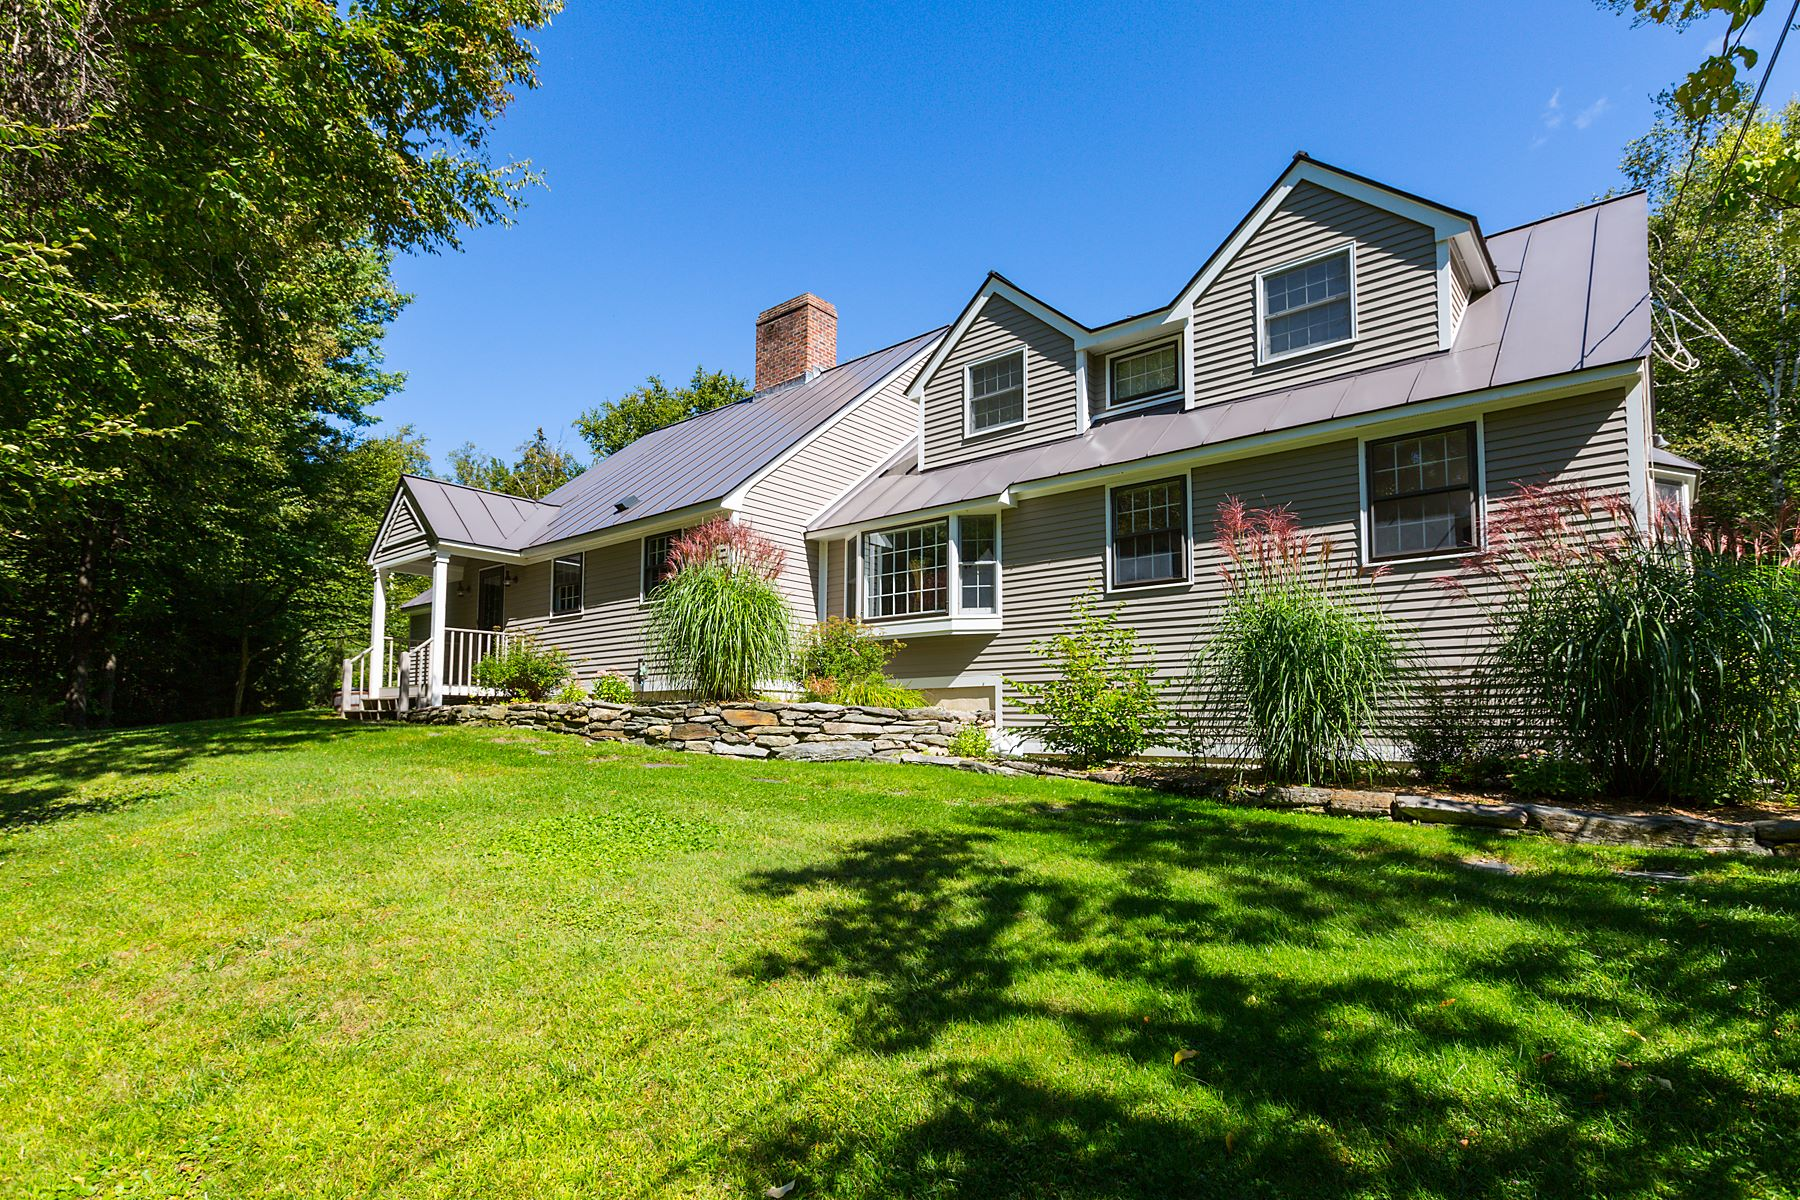 Single Family Homes for Sale at Charming Extended Cape 1442 North Road Barnard, Vermont 05031 United States